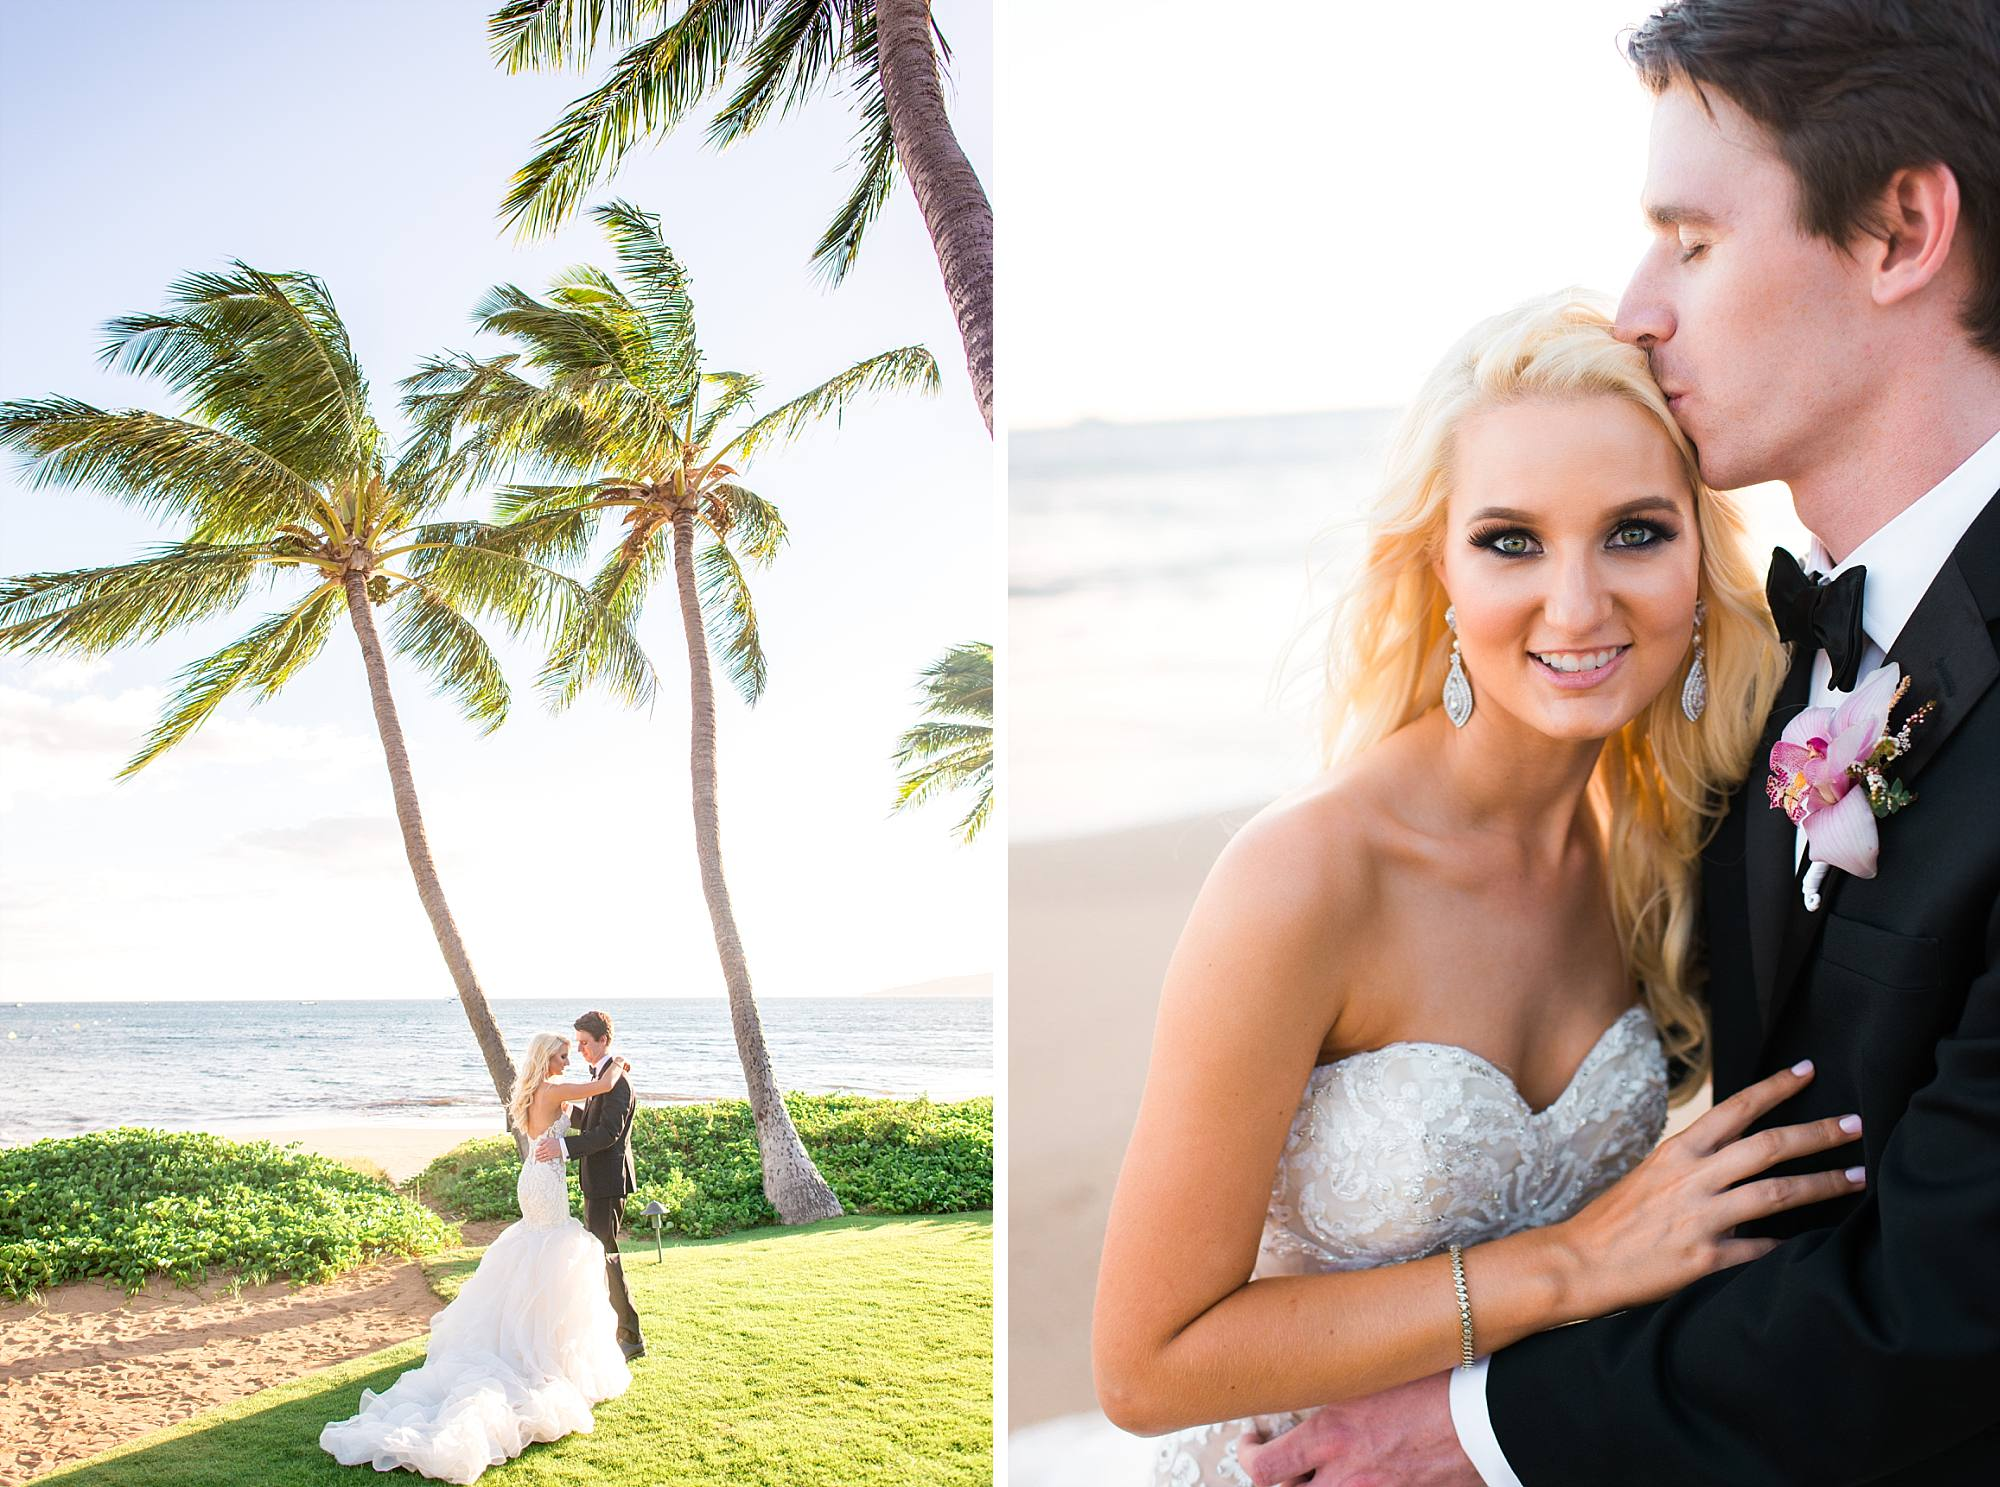 Luxurious Maui Wedding at Sugar Beach Events sweetheart shots with the Maui landscape behind them